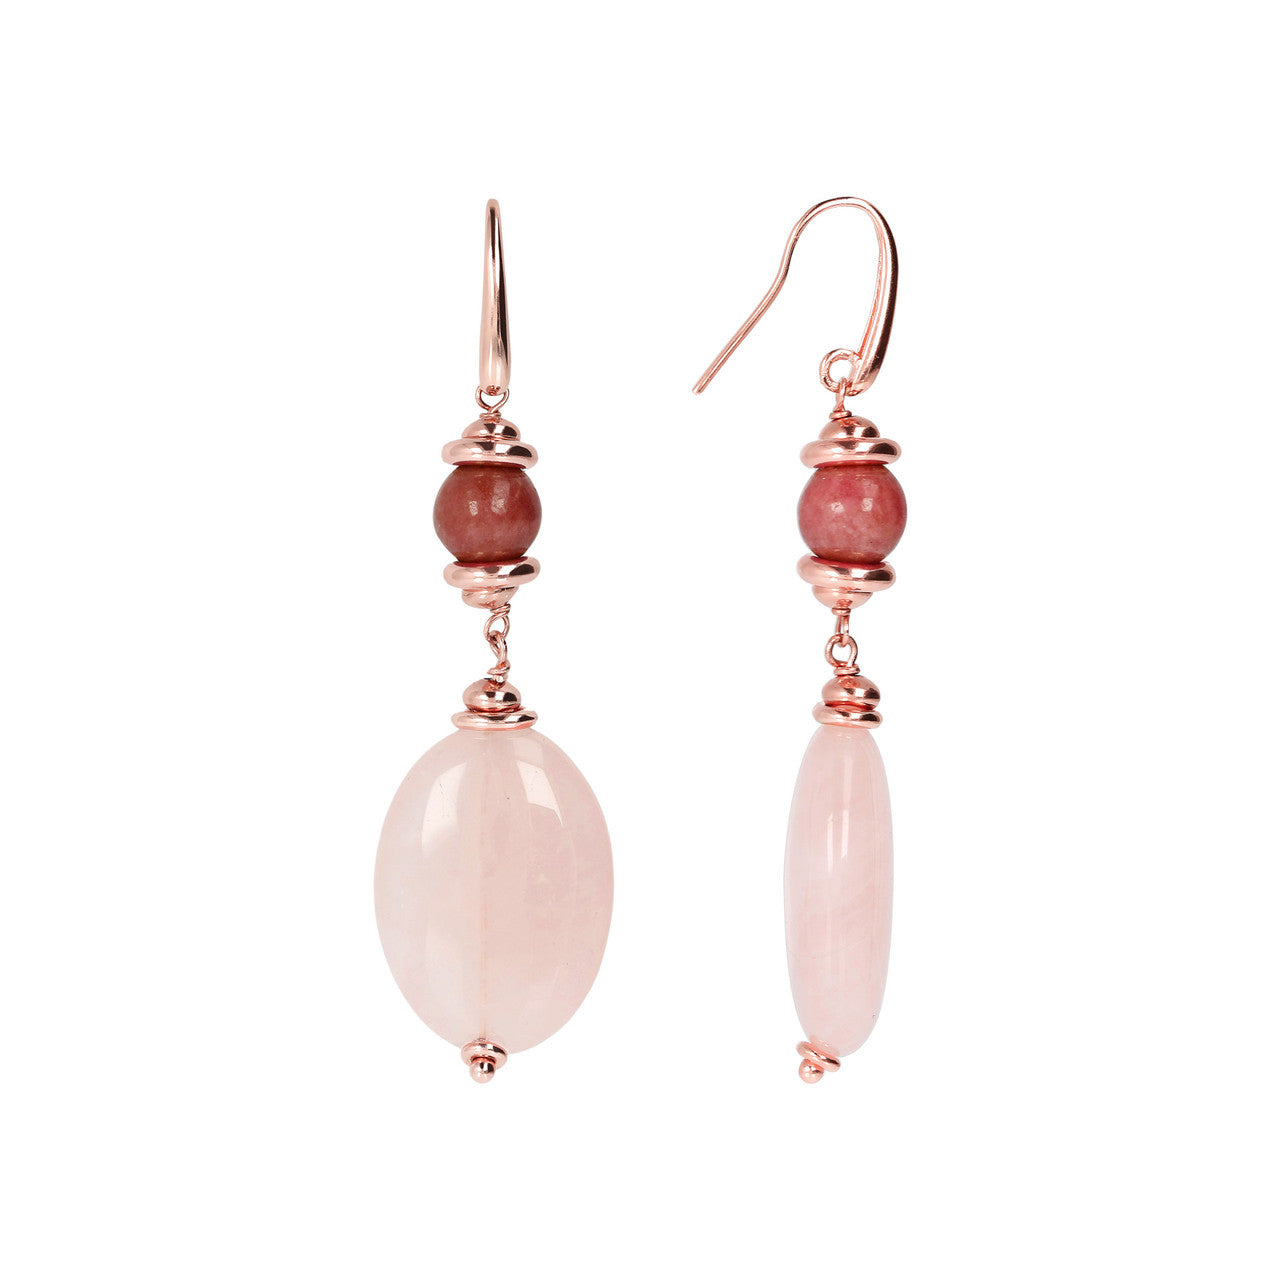 Pink Dangle Earrings with Gemstones